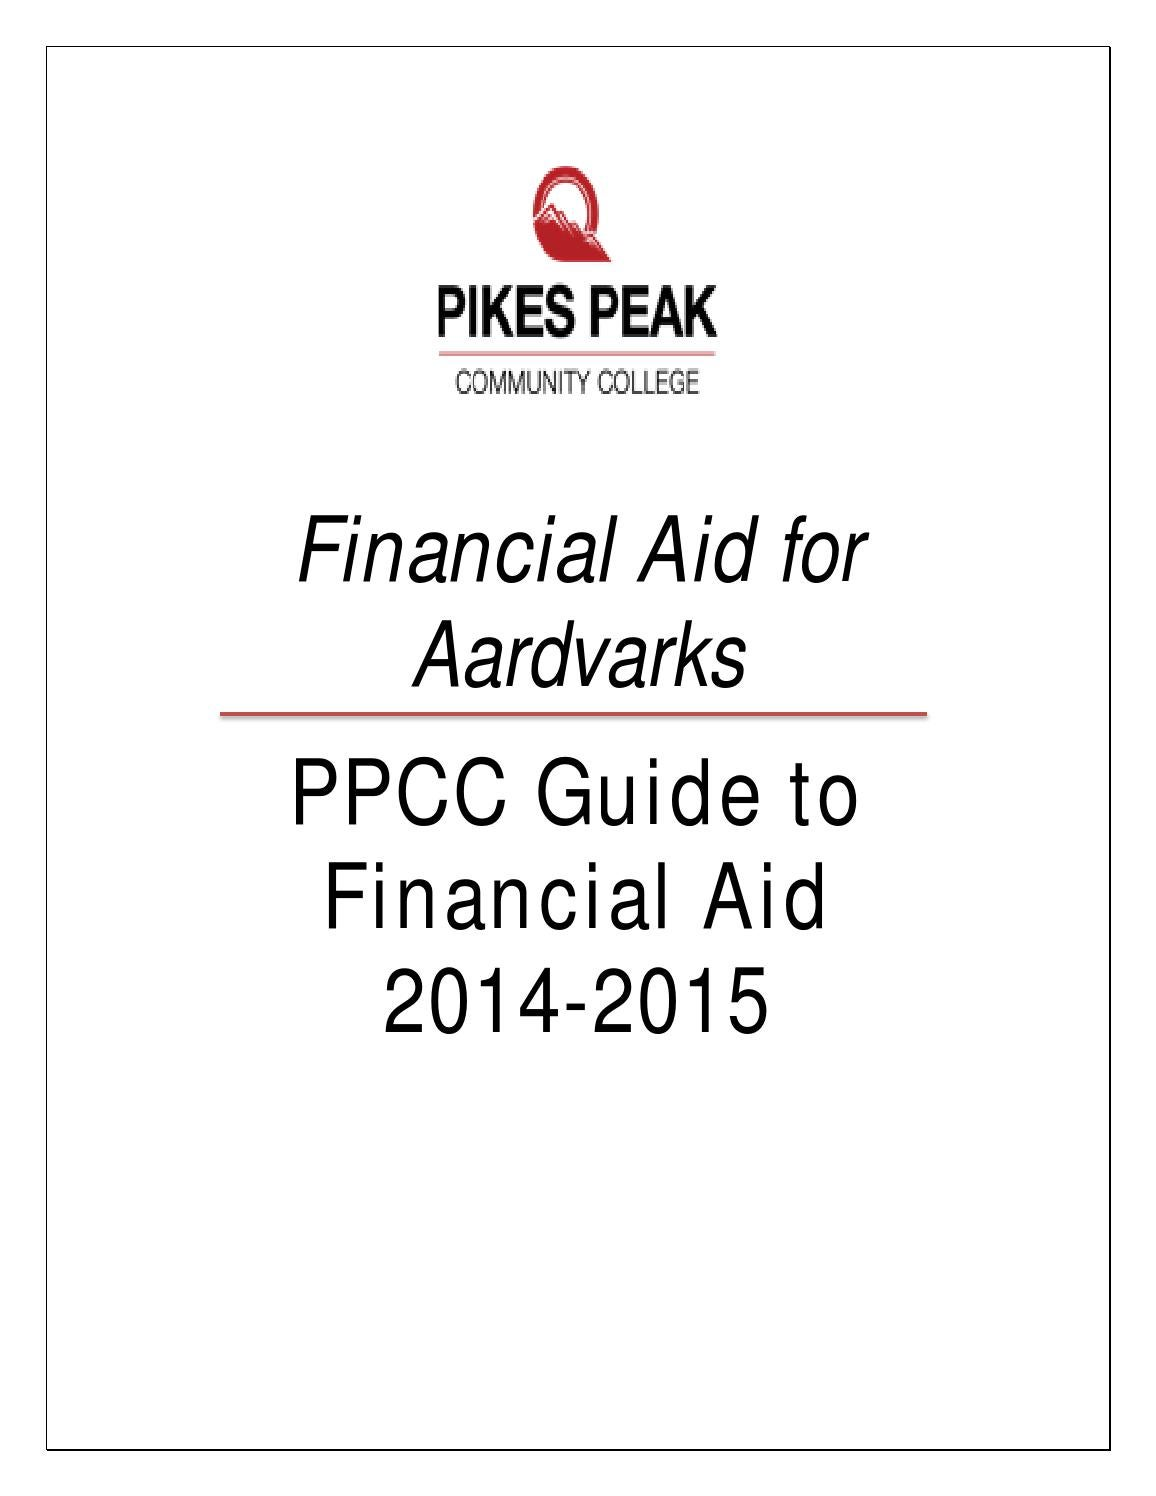 2014-2015 Financial Aid Handbook by Pikes Peak Community